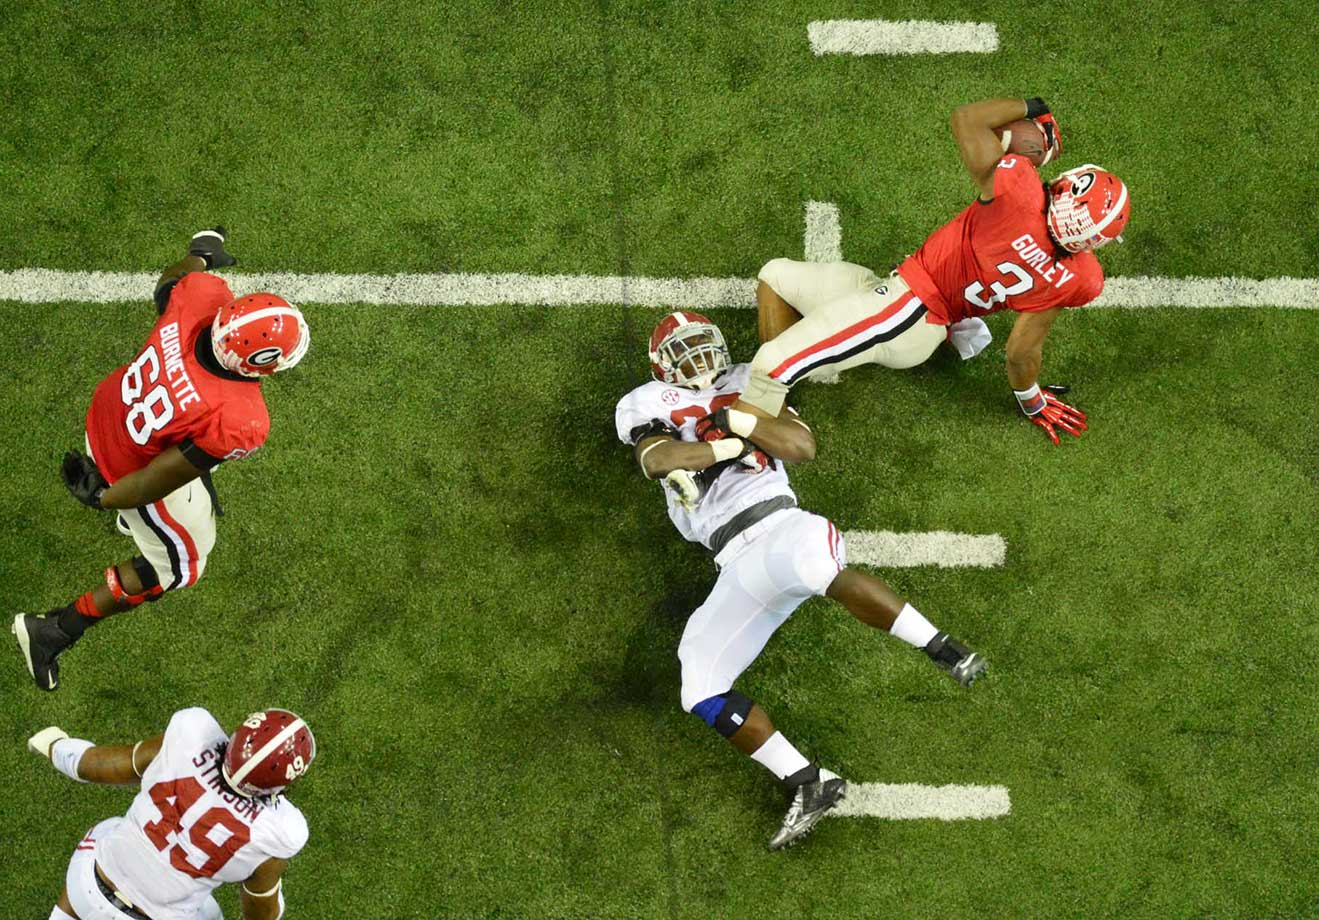 Georgia running back Todd Gurley being tackled by an Alabama defender in the 2012 SEC Championship game.